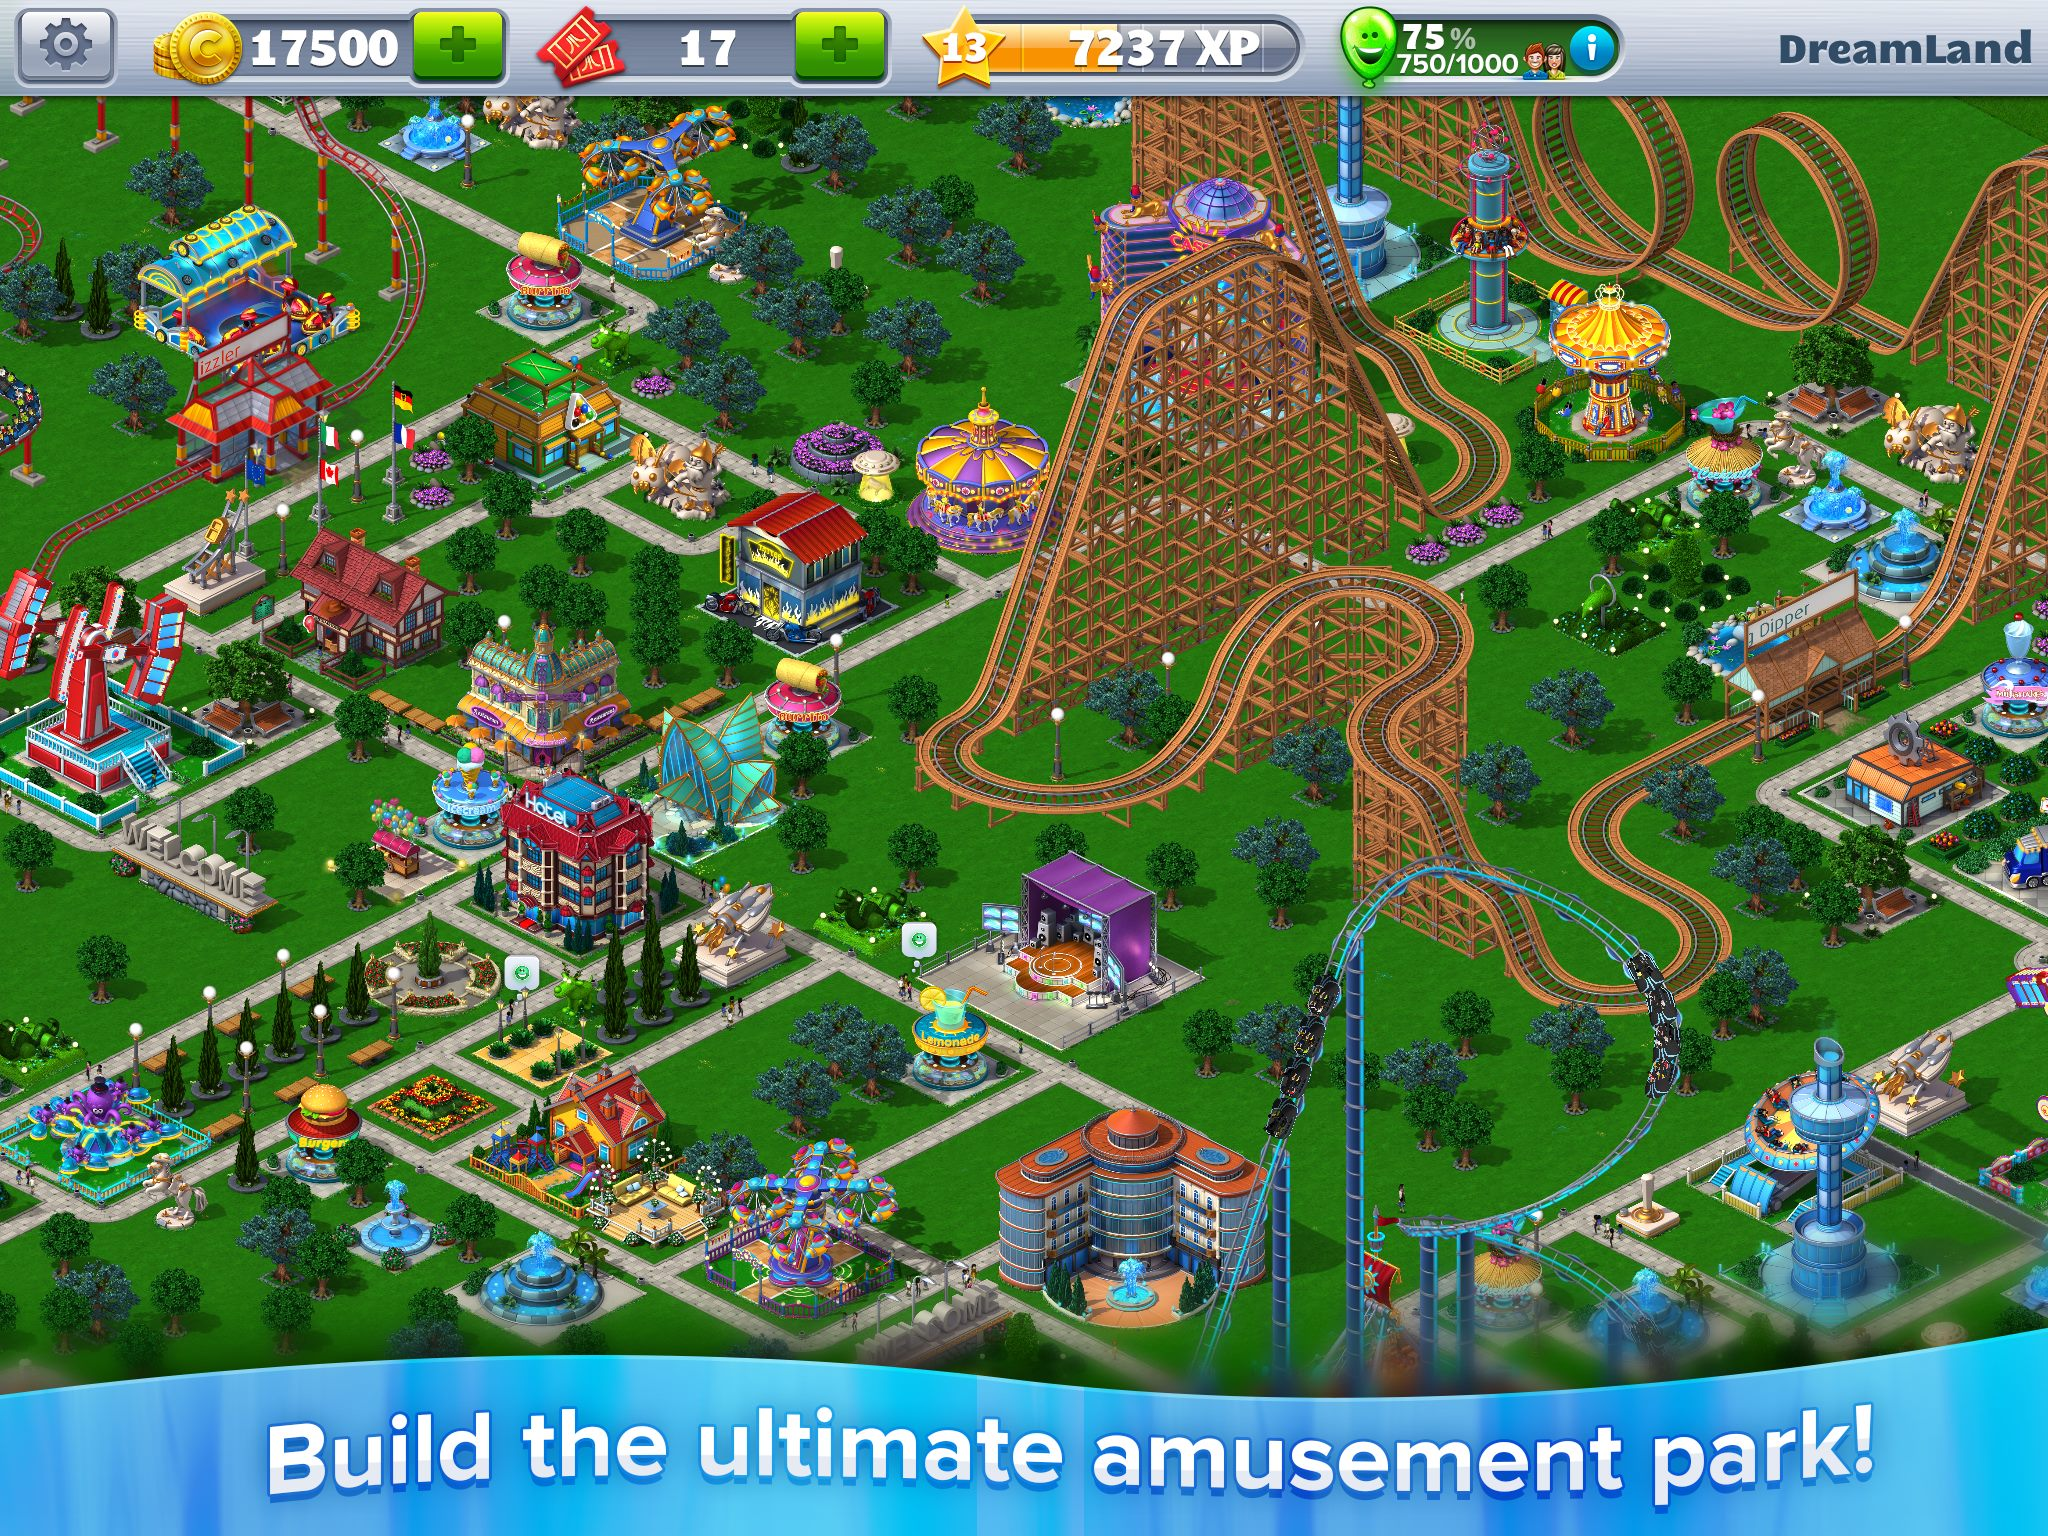 rct4m rollercoaster tycoon 4 mobile